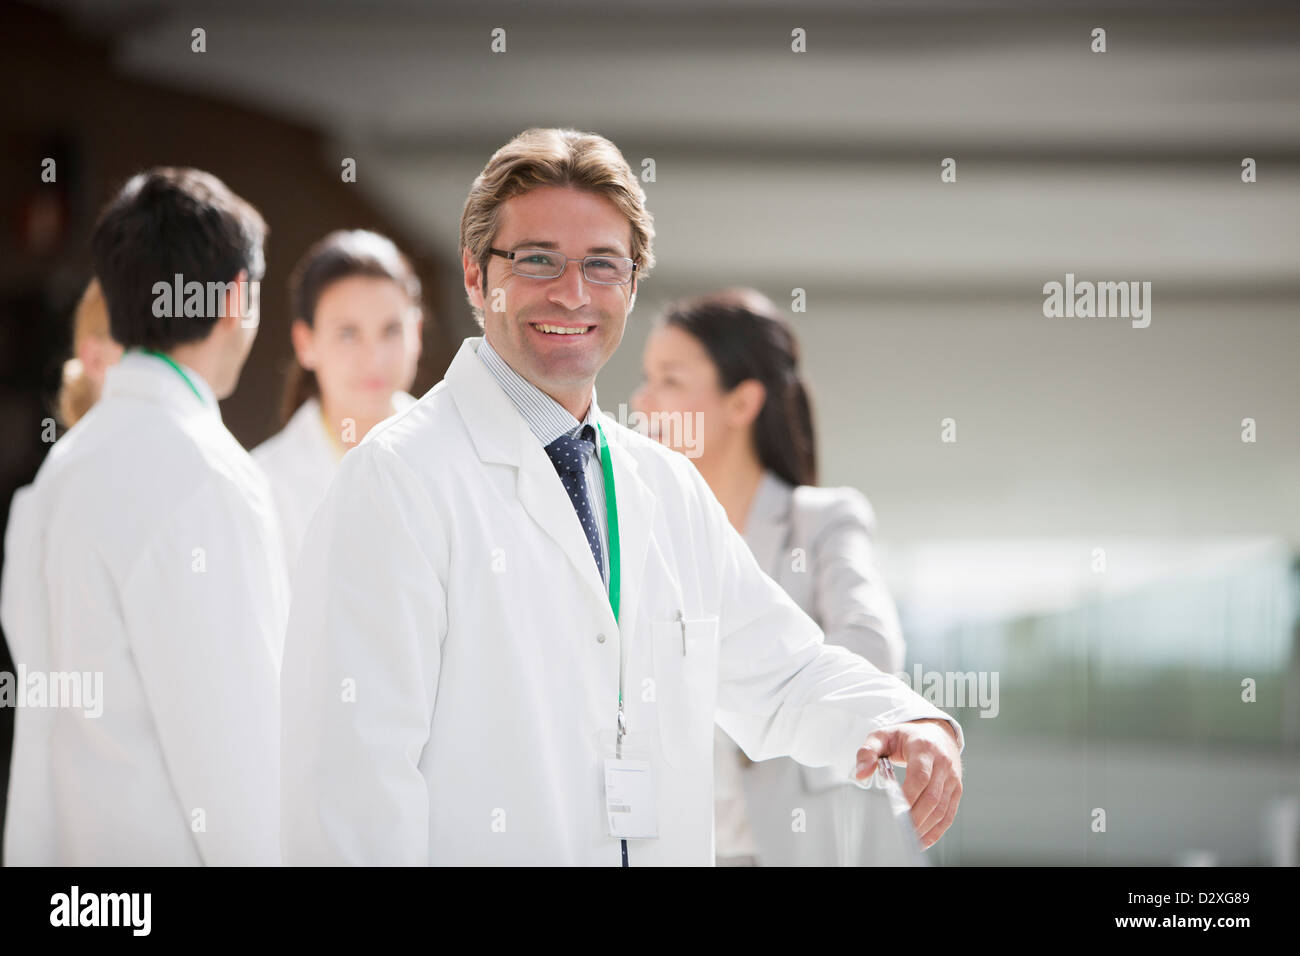 Portrait of smiling scientist with co-workers in background - Stock Image